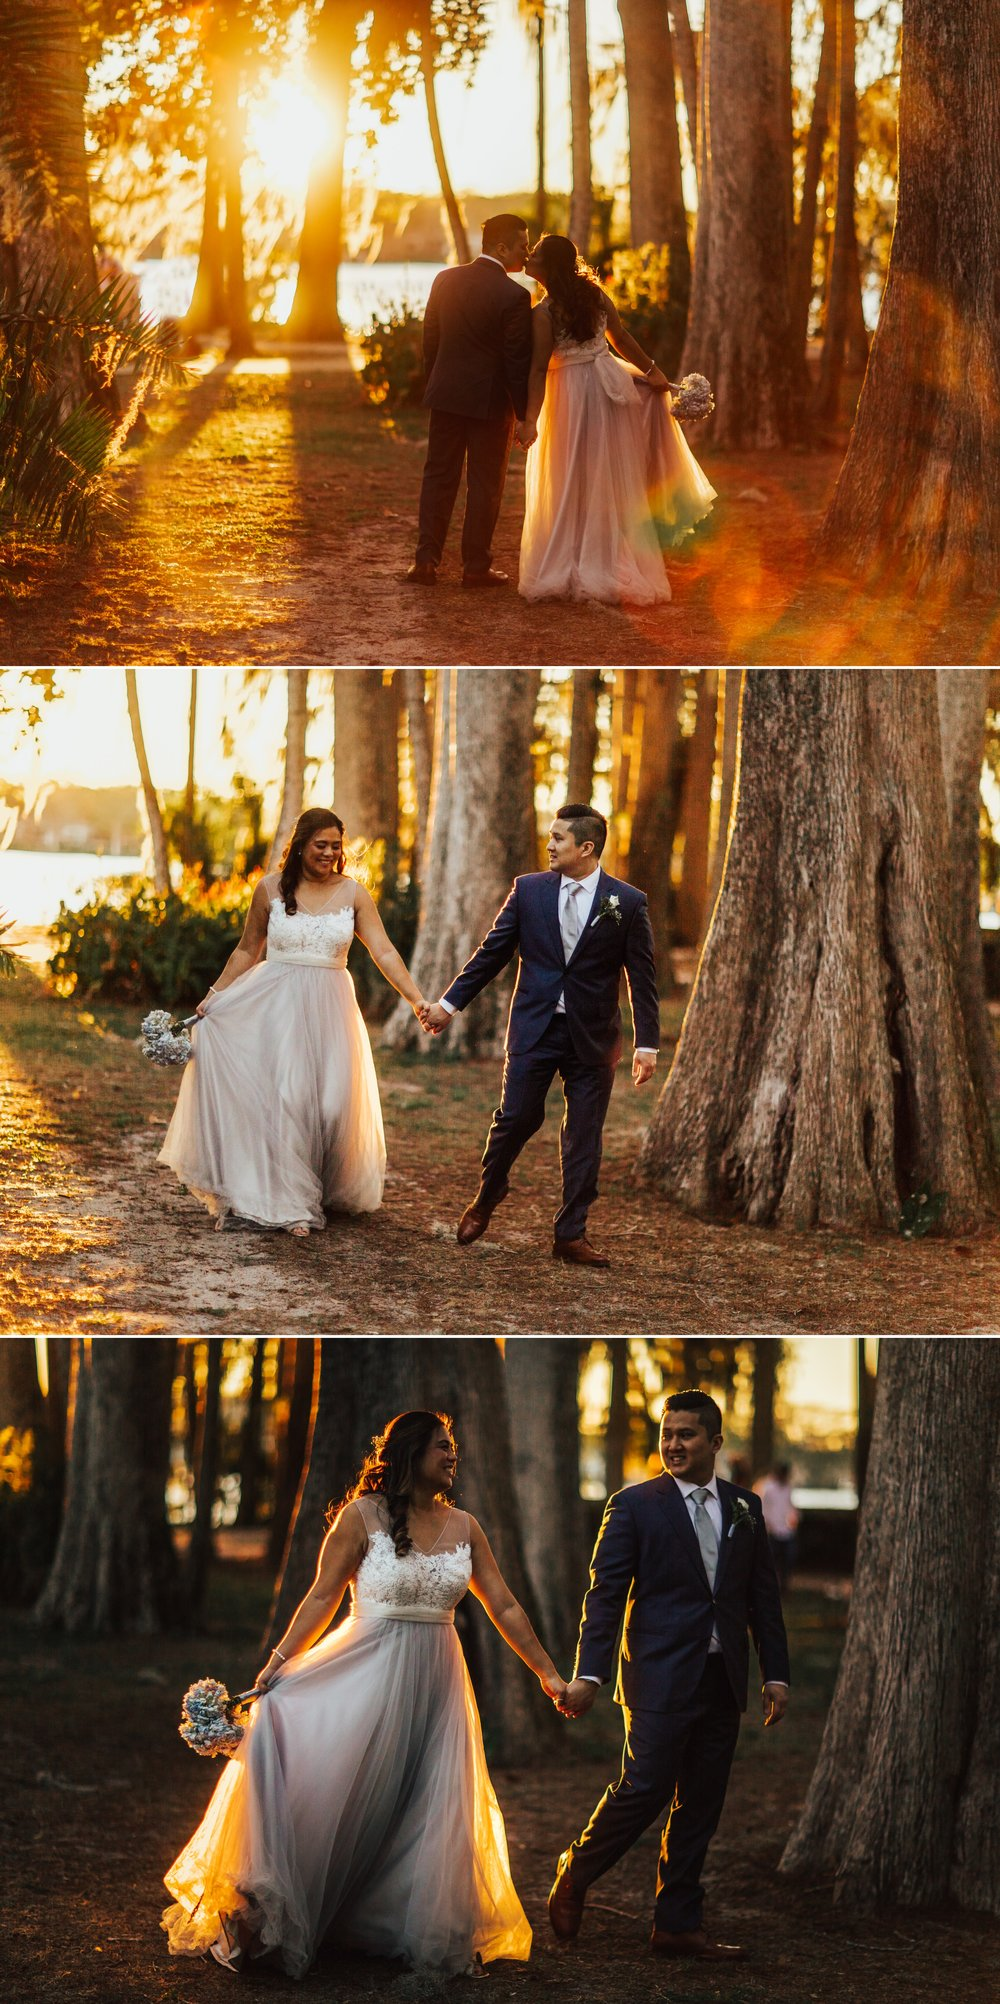 Romantic Leu Gardens Wedding Pictures - Winter Park Wedding Photographer Shaina DeCiryan- Effie+Phillip15.jpg